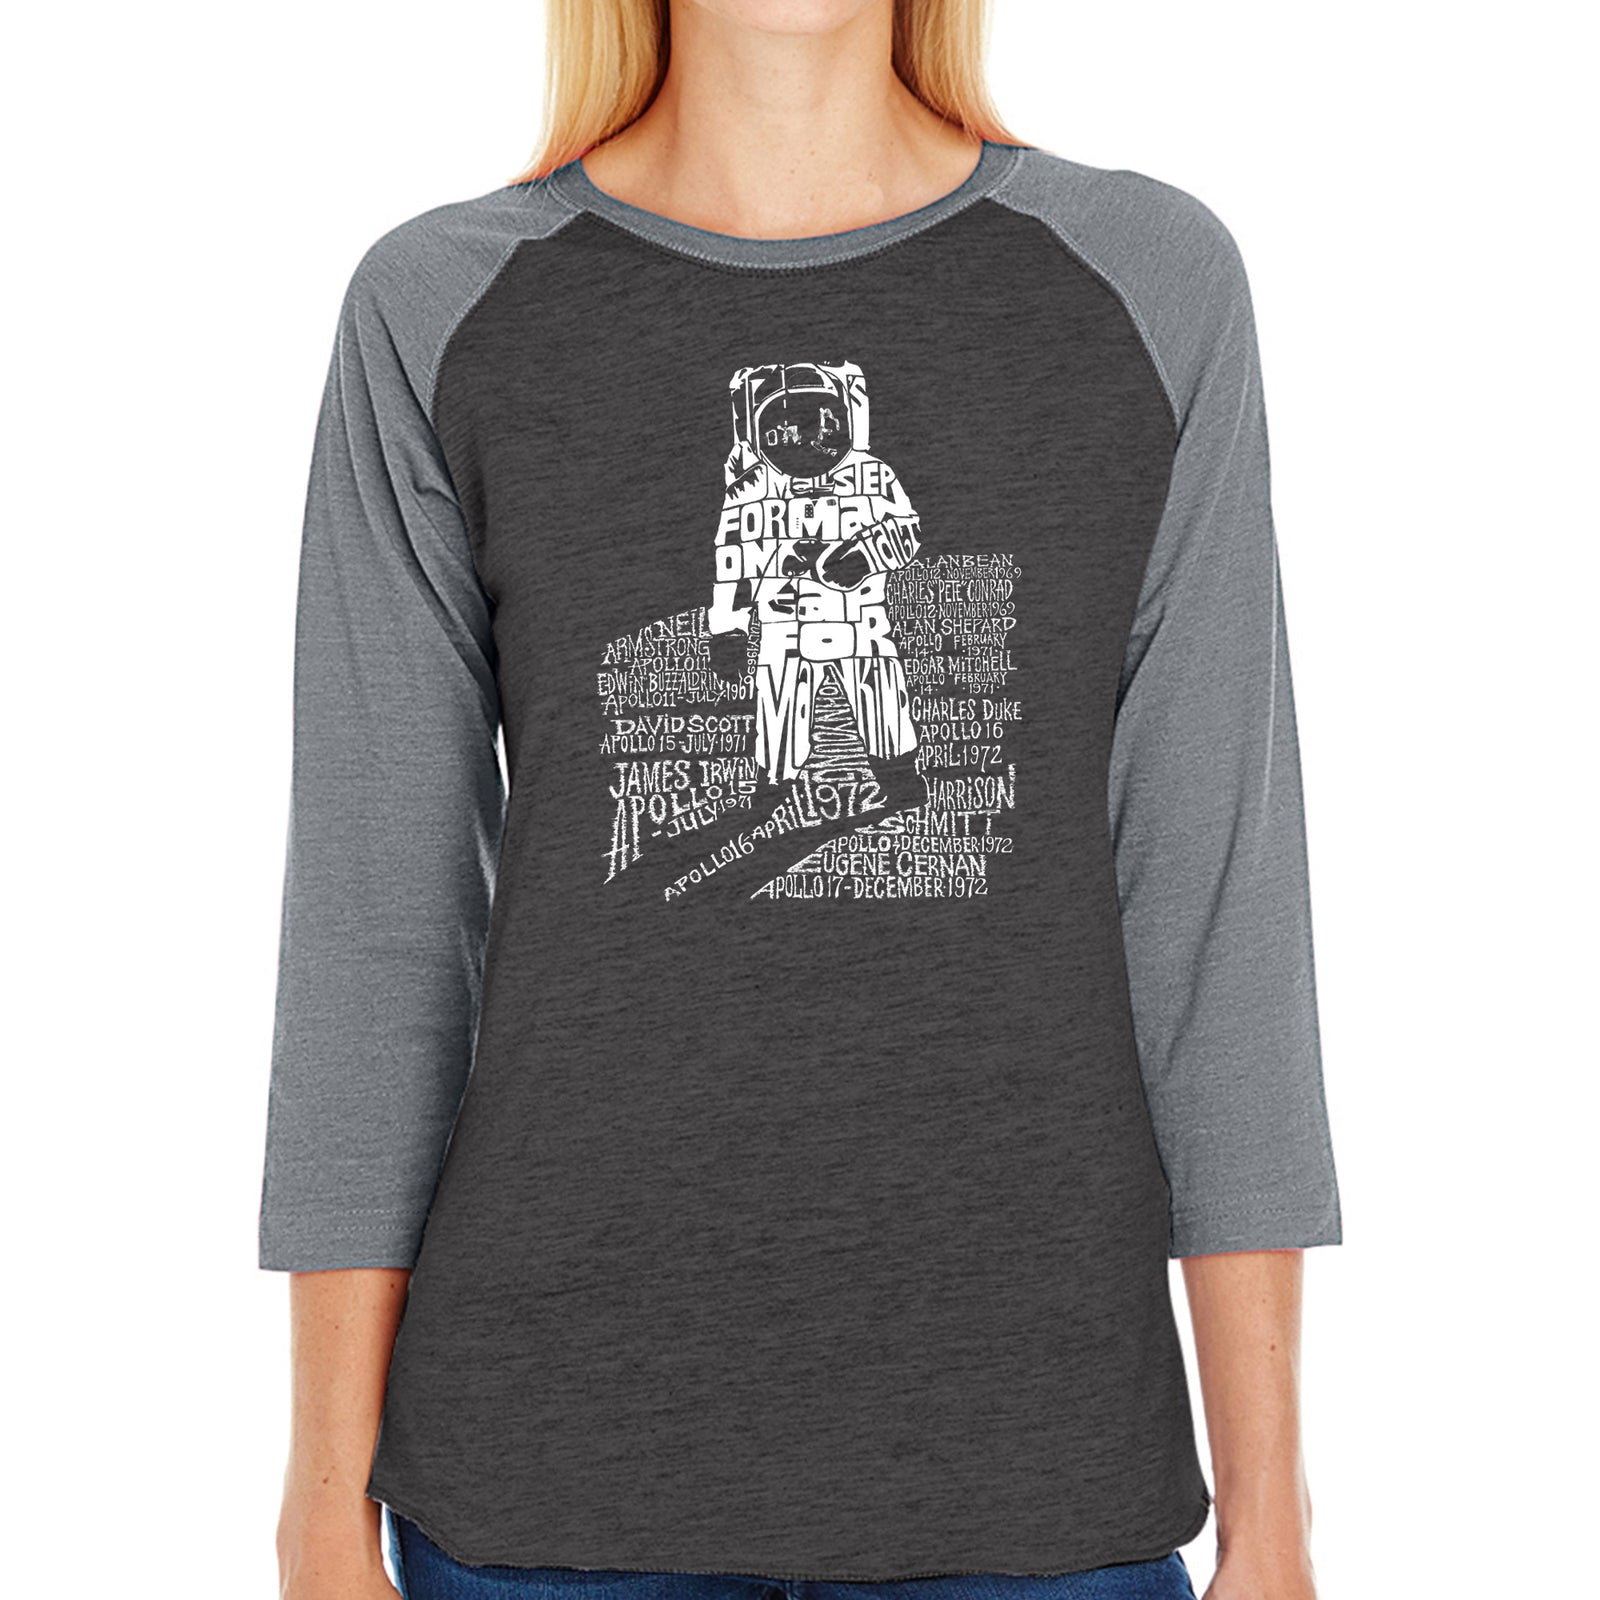 Women's Raglan Baseball Word Art T-shirt - ASTRONAUT